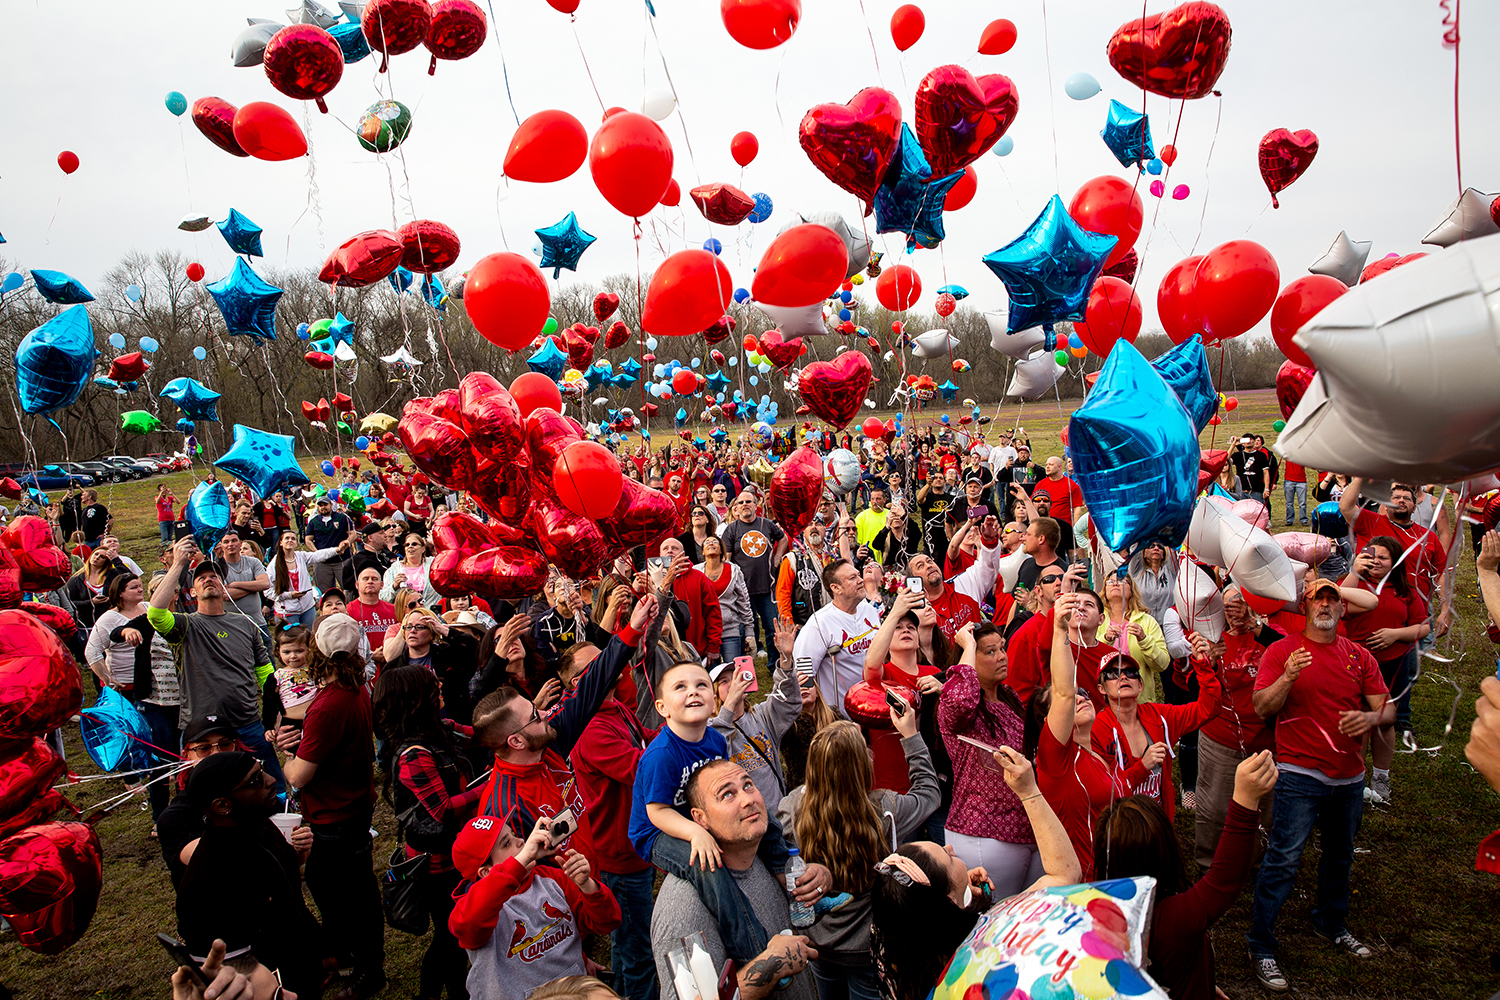 Hundreds of balloons were launched from Riverside Park in honor of Shane Shmodie's 30th birthday by friends supporting his family Wednesday, April 25, 2018 in Springfield, Ill. Shomidie went missing after a kayaking accident on the Sangamon River April 23. Search efforts are continuing. [Rich Saal/The State Journal-Register]